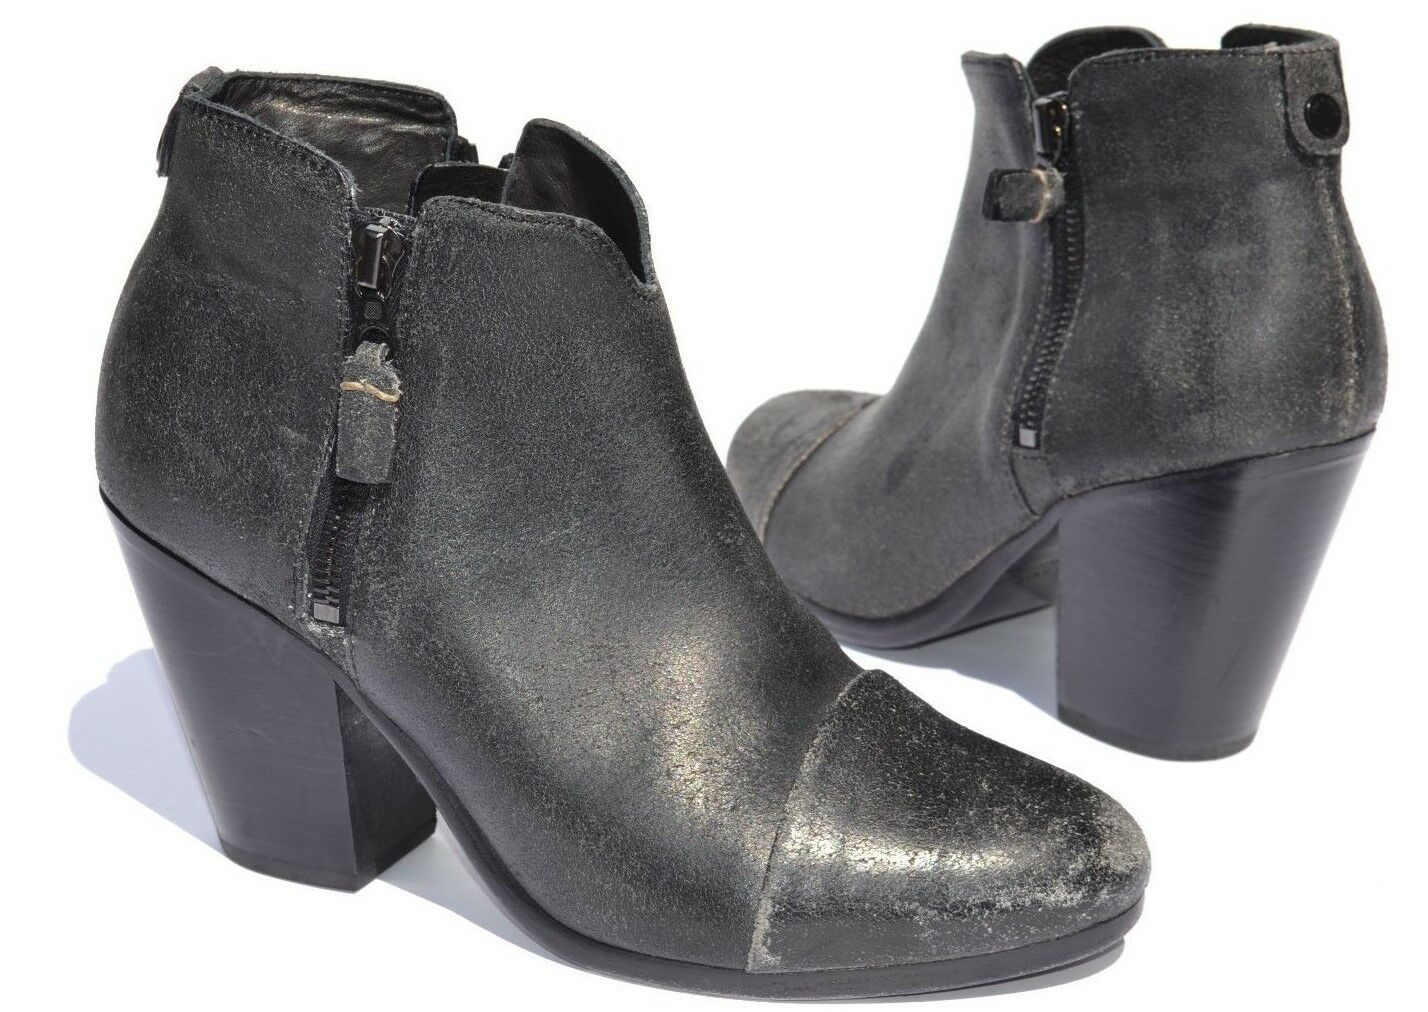 Rag and bone Margot Negro agrietado Cremallera Botines Talla 37.5 7.5